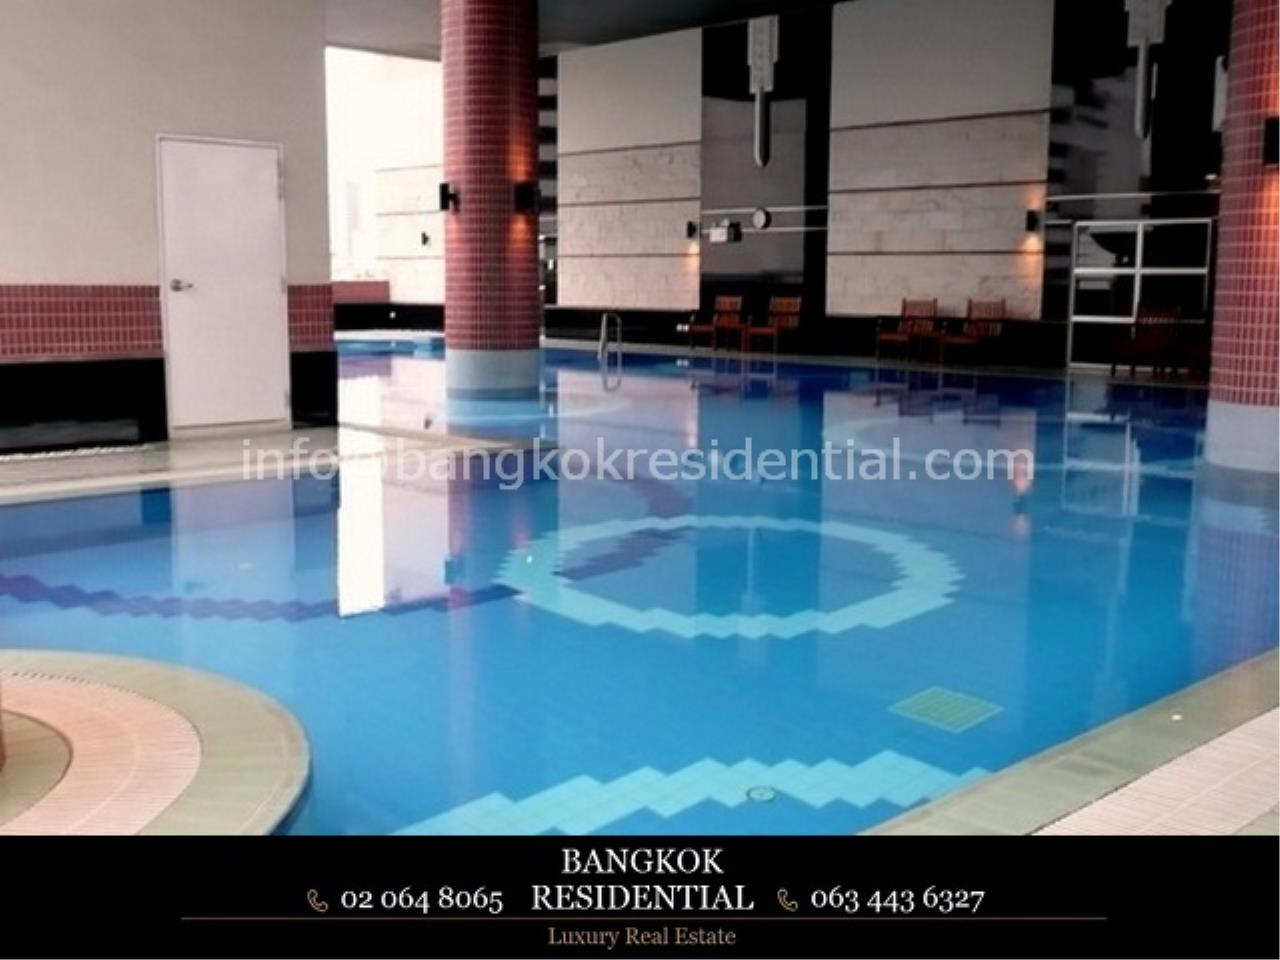 Bangkok Residential Agency's 3BR Citi Smart For Rent (BR5921CD) 1